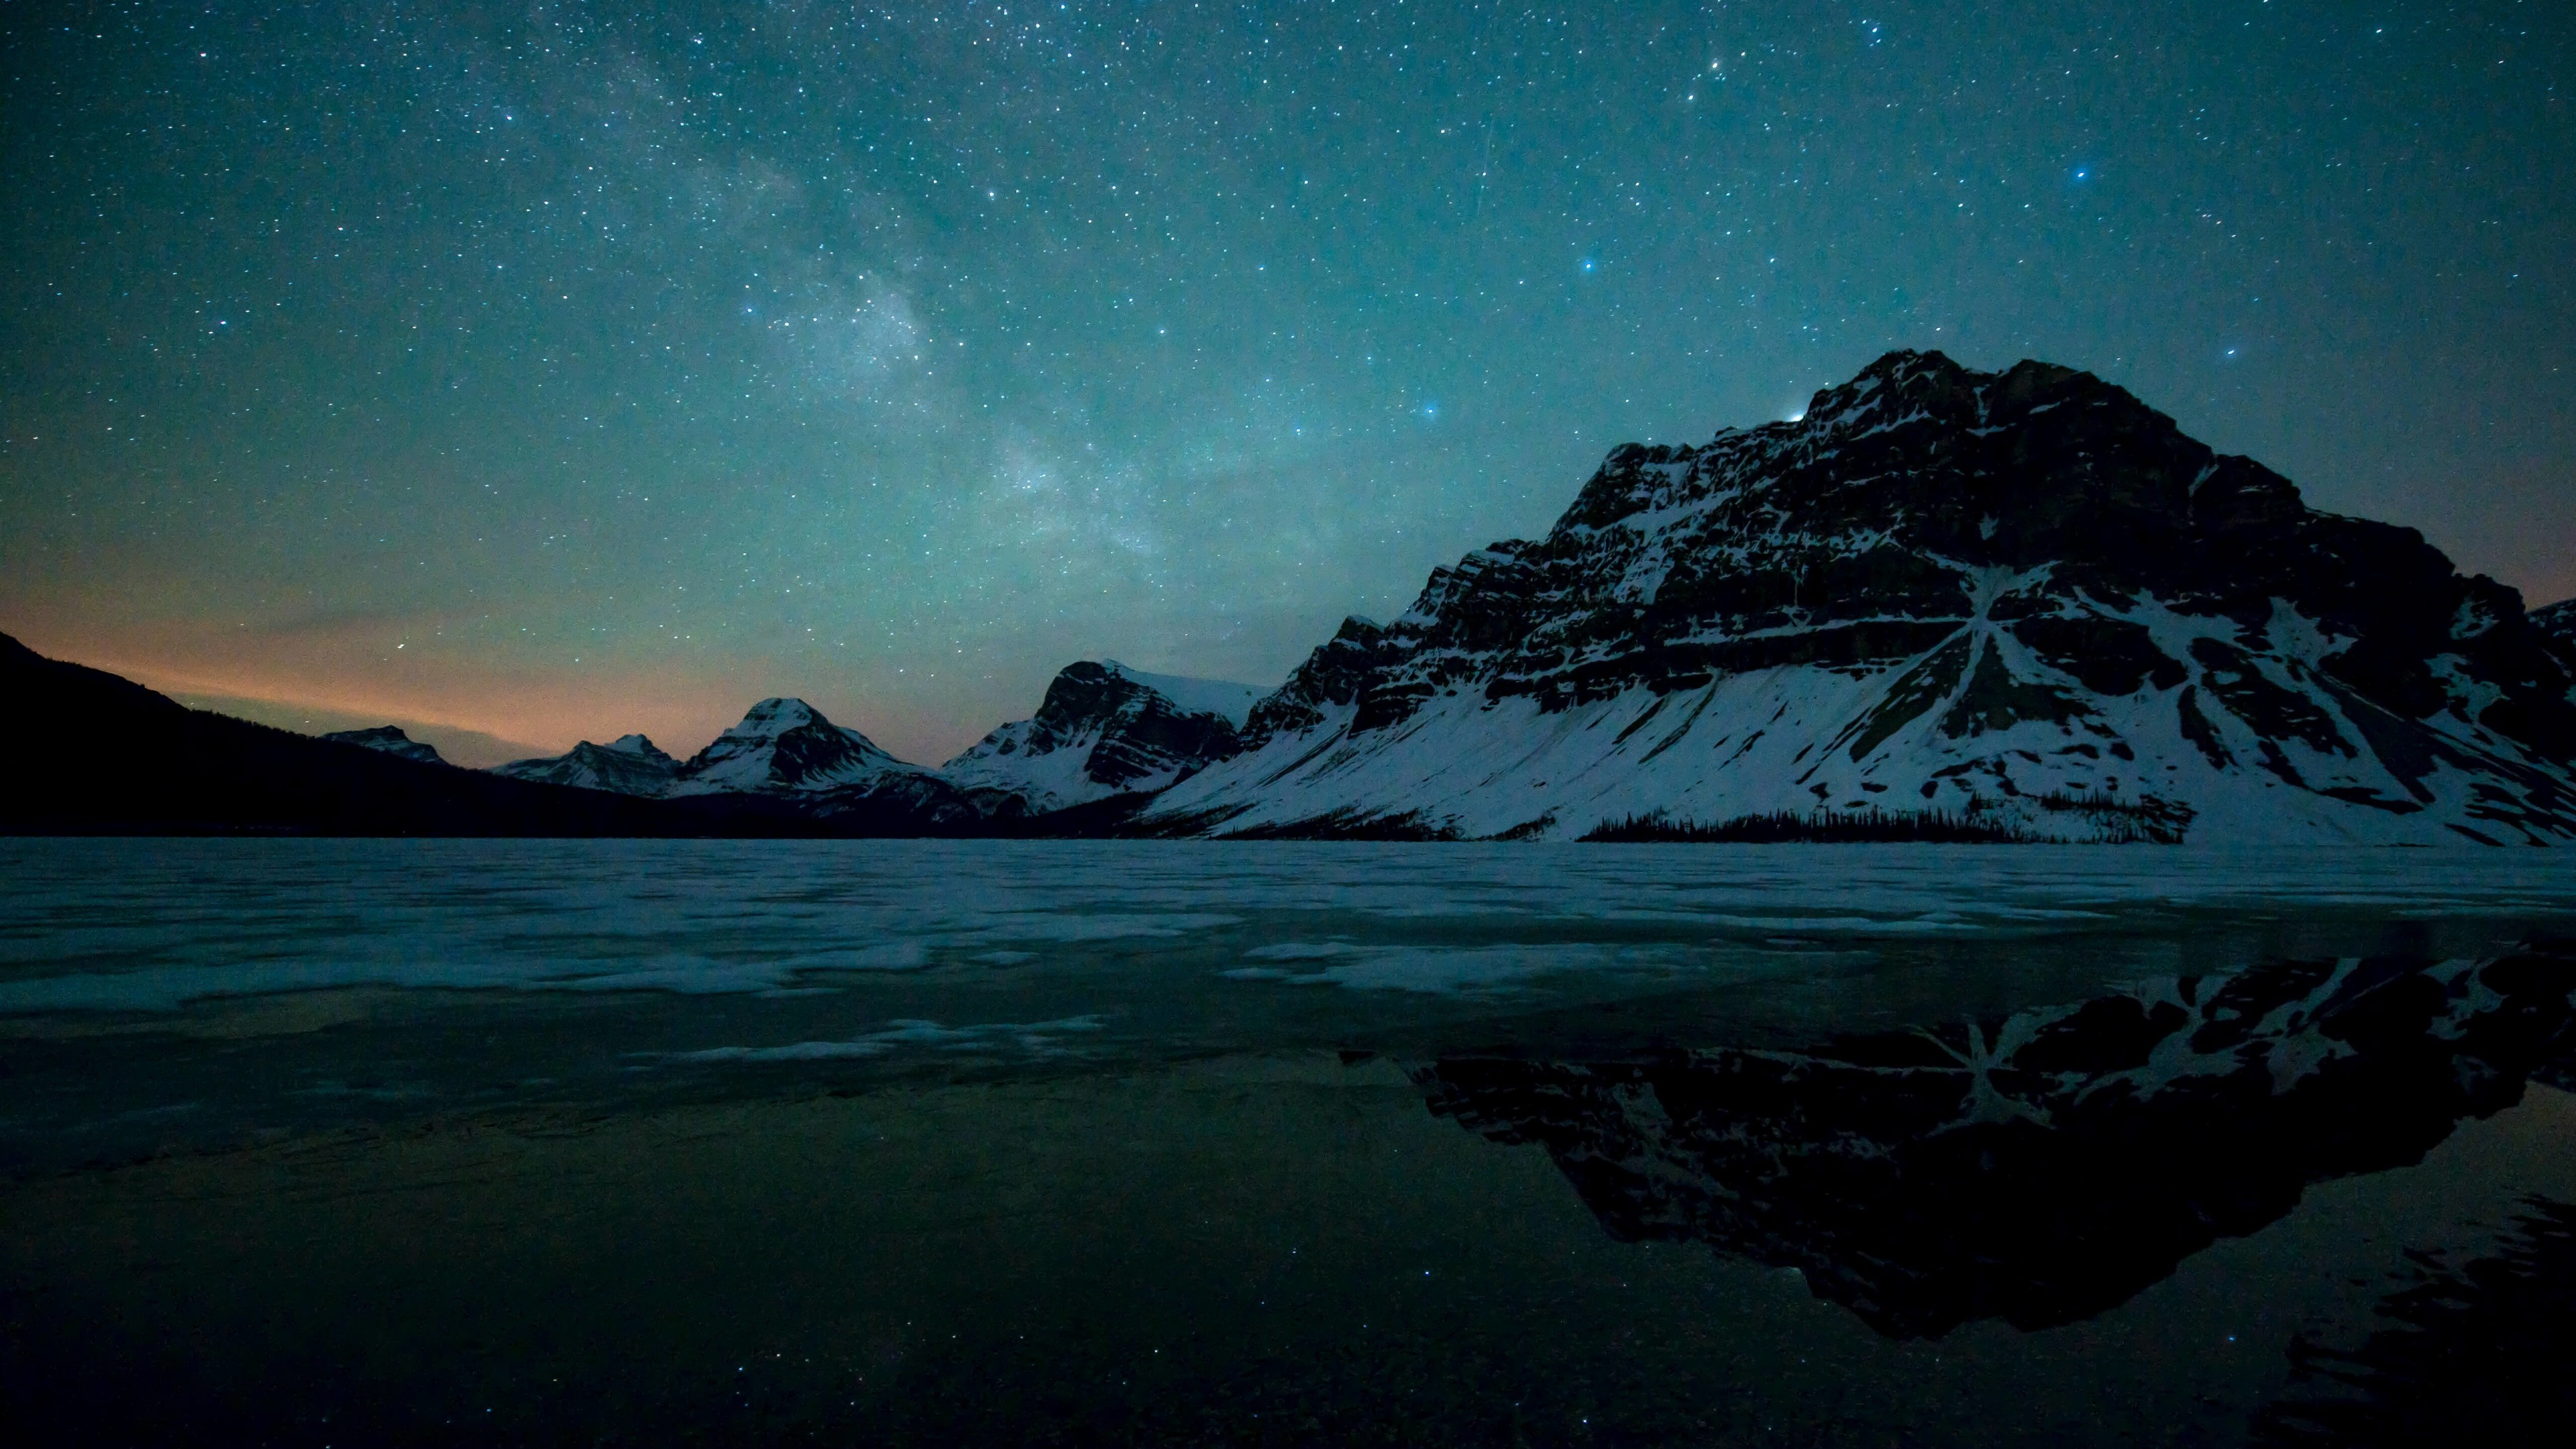 Milky Way over Bow Lake, Alberta, Canada Wallpaper for Desktop 4K 3840x2160